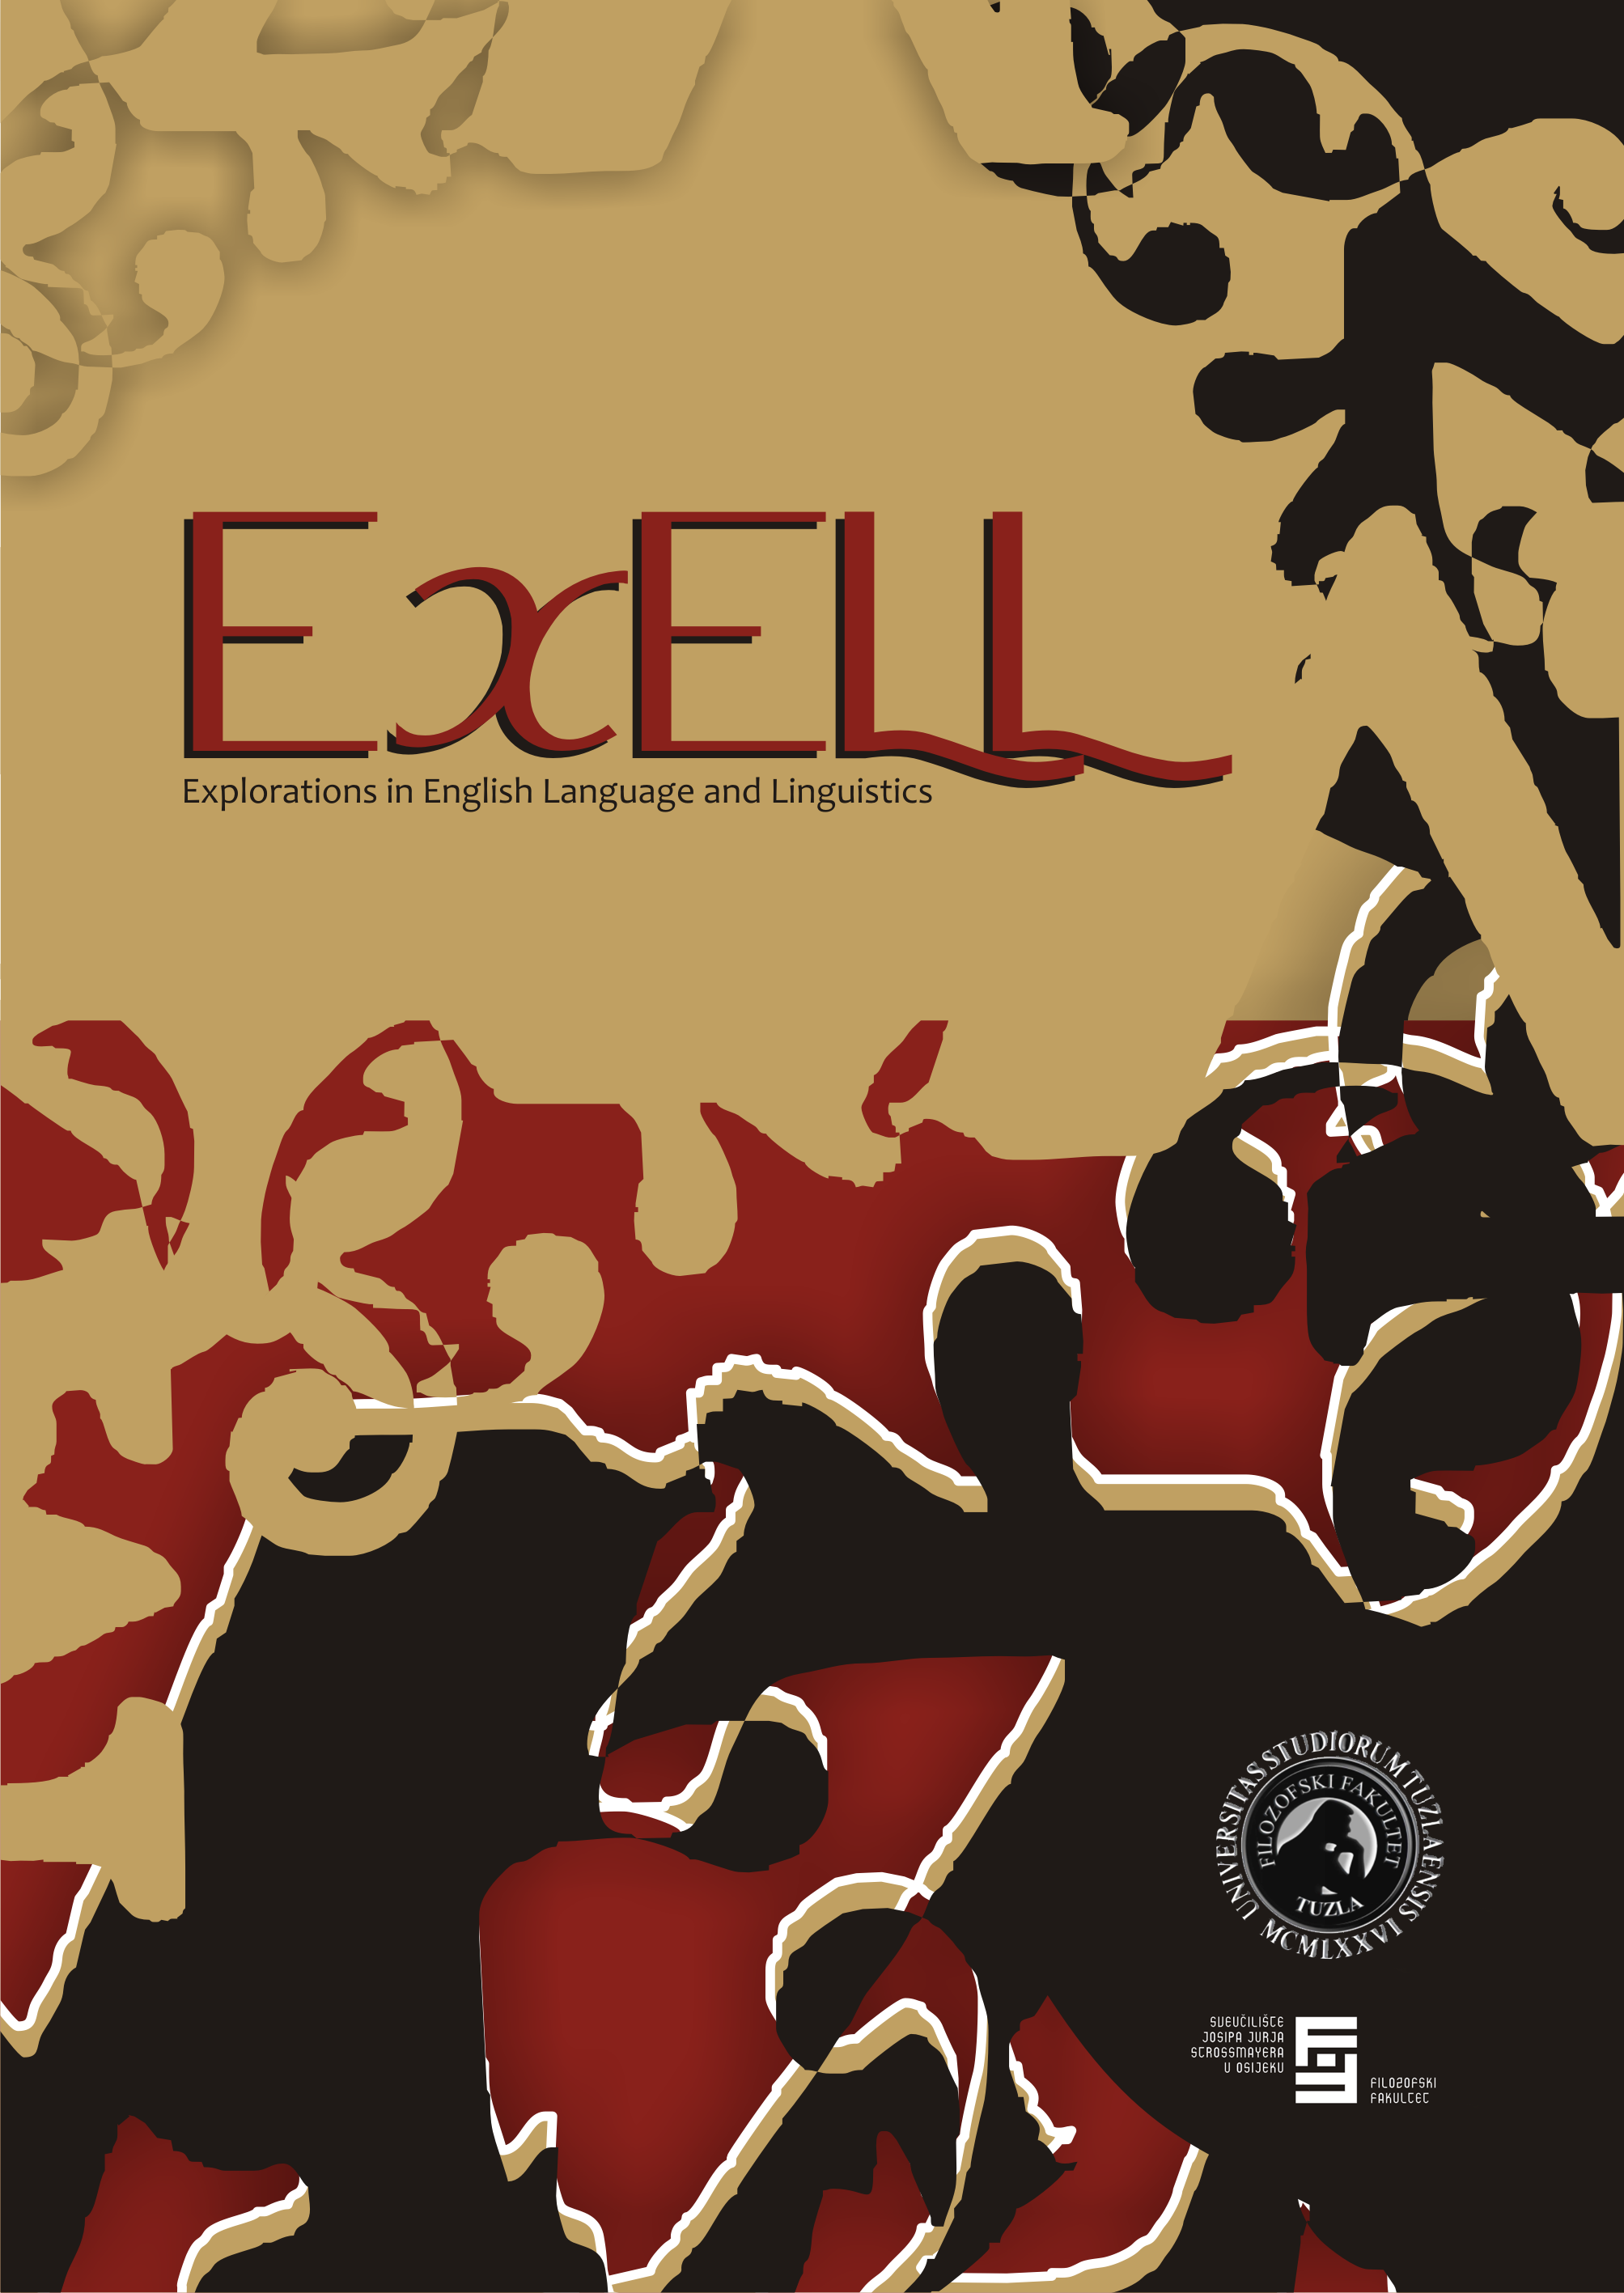 ExELL (Explorations in English Language and Linguistics)